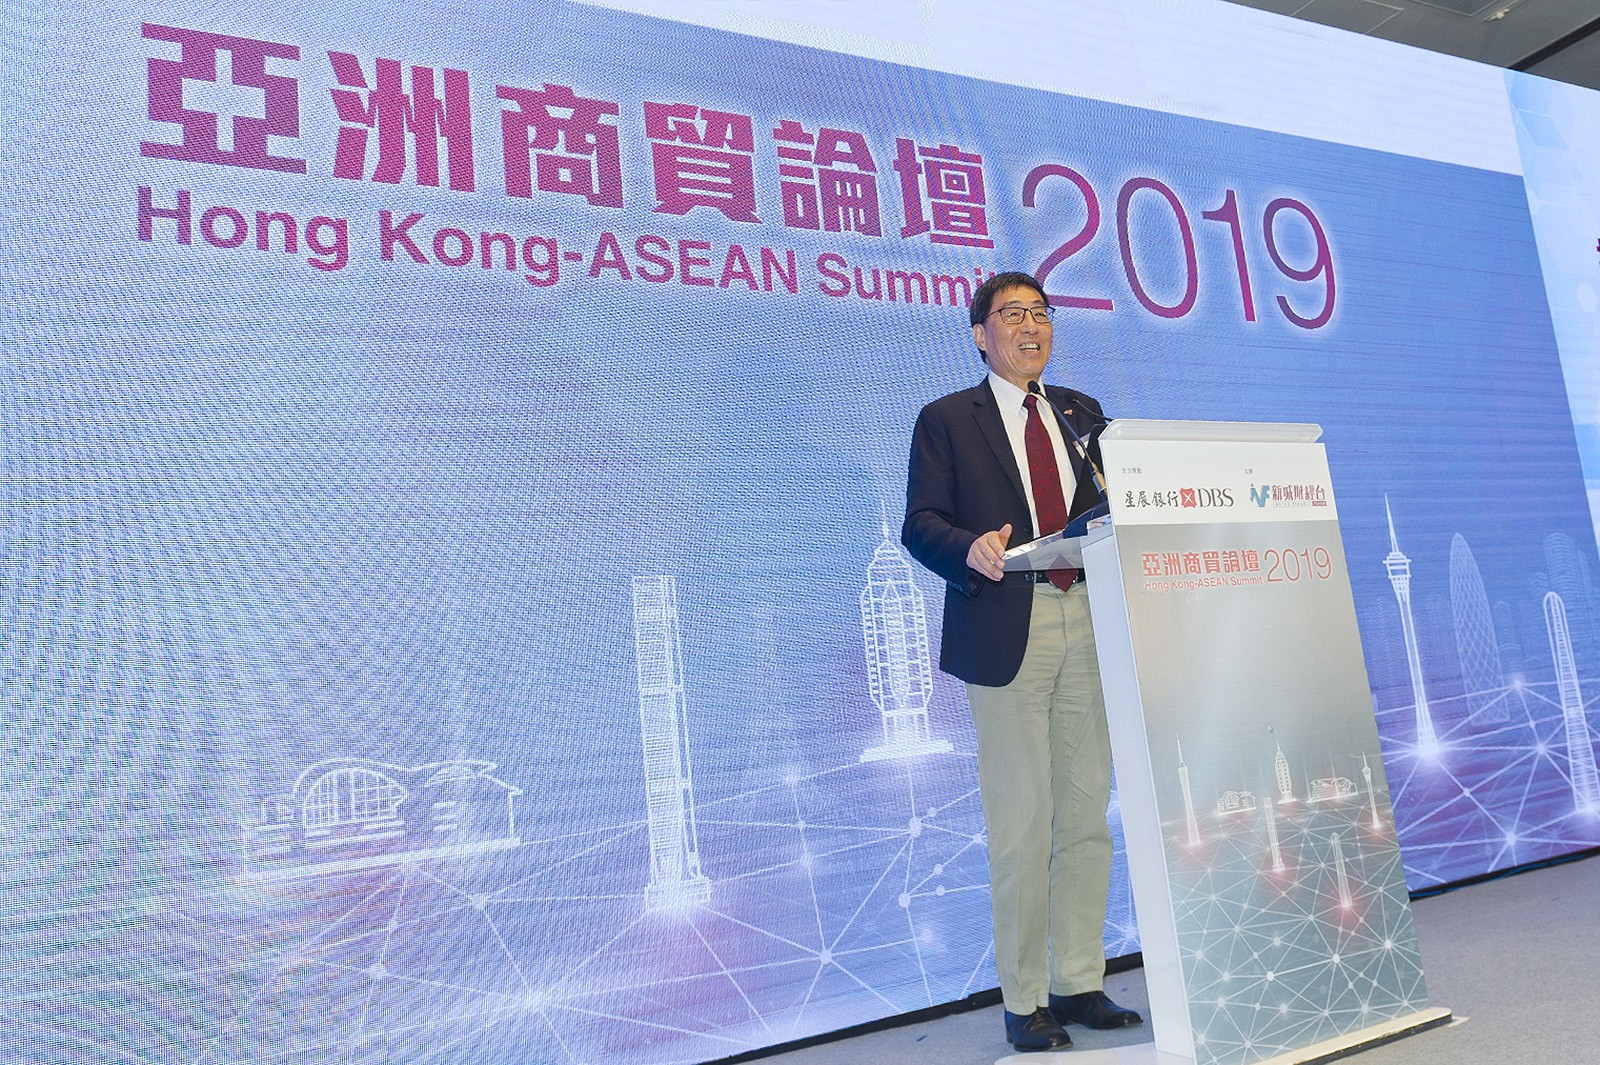 "Professor Kuo delivered a keynote speech on ""How to promote the development of innovation and technology in Hong Kong"" at the Hong Kong-ASEAN Summit 2019. The Summit was attended by some 200 distinguished members of the community, including the consuls general of Asian countries and other government guests, along with representatives from the business community."